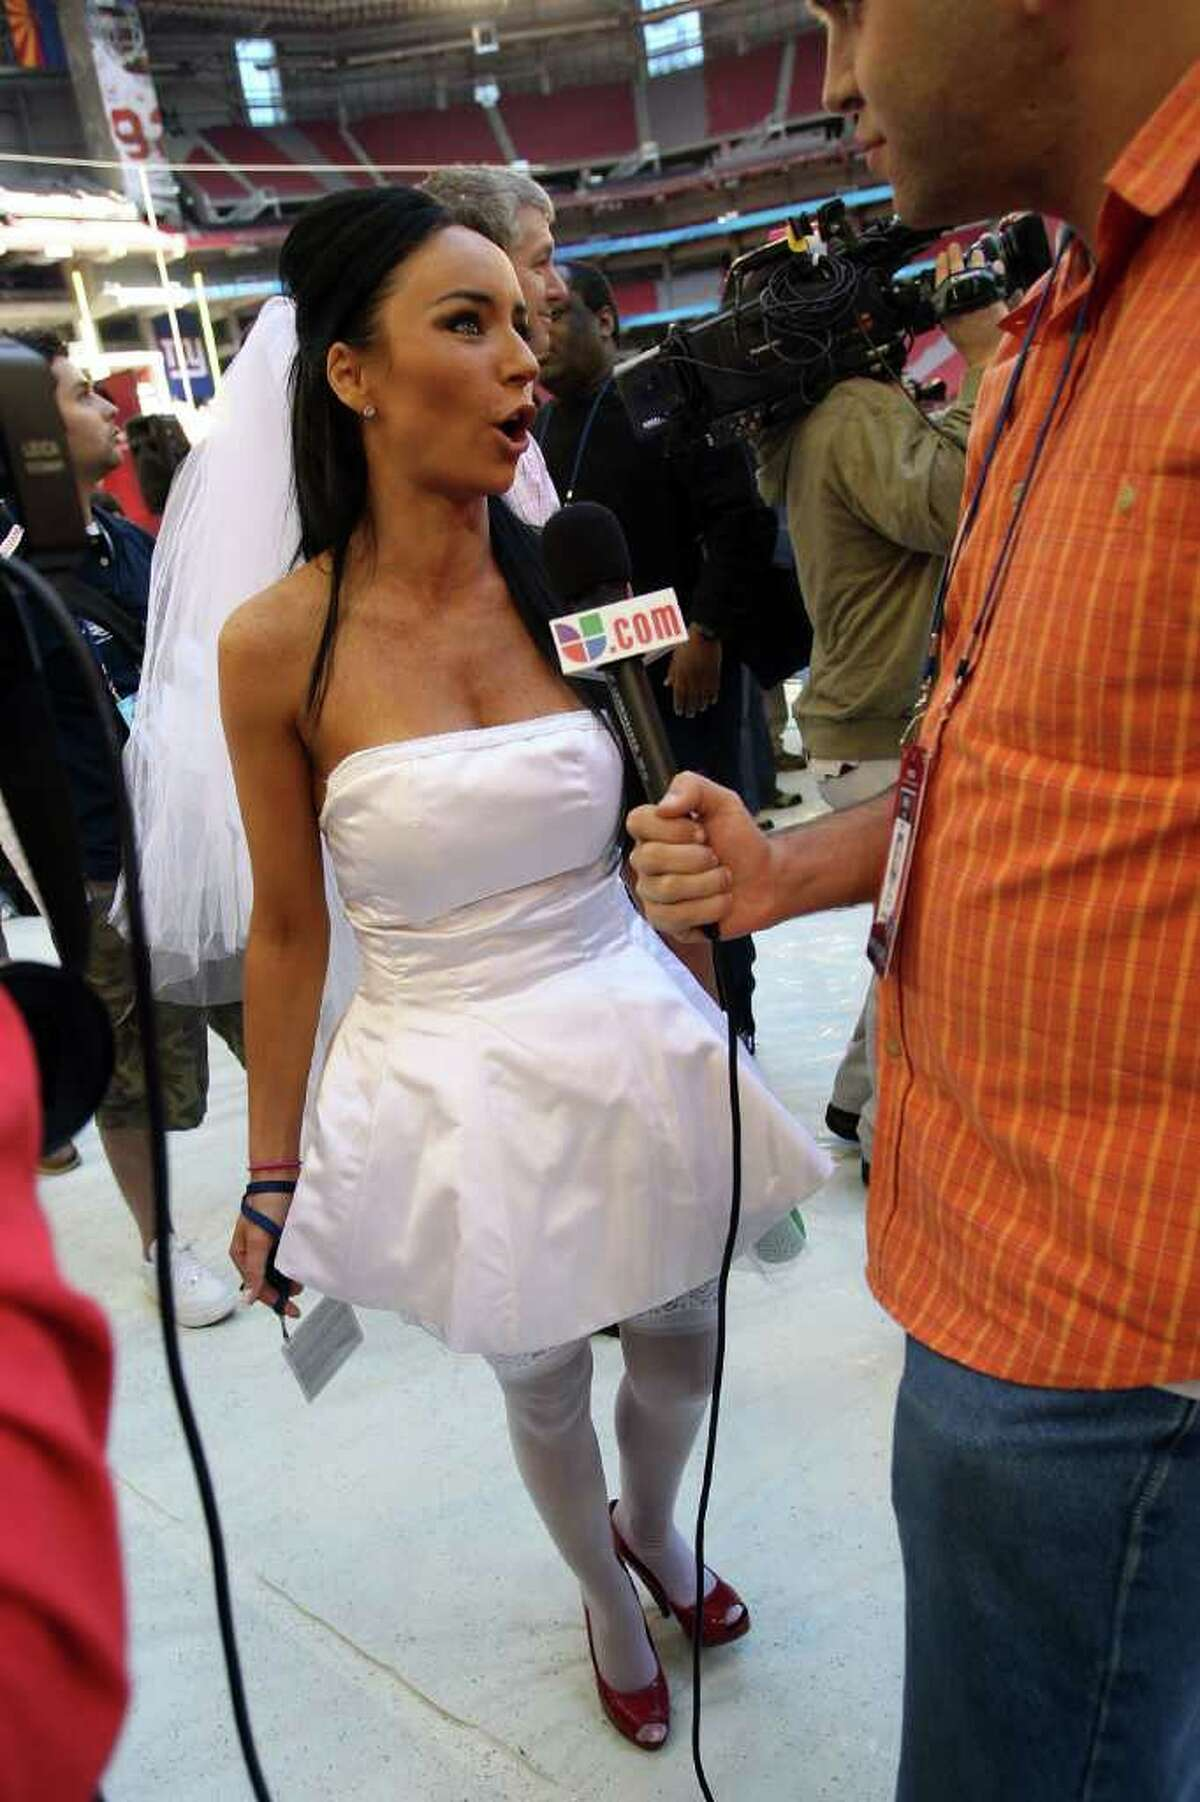 25. A proposal to Tom Brady - Super Bowl XLII: Media Day is full of crazy stunts. Ines Gomez Mont's might top the list. The TV Azteca reporter, wearing a wedding dress, interrupted media day and proposed to Patriots quarterback Tom Brady.